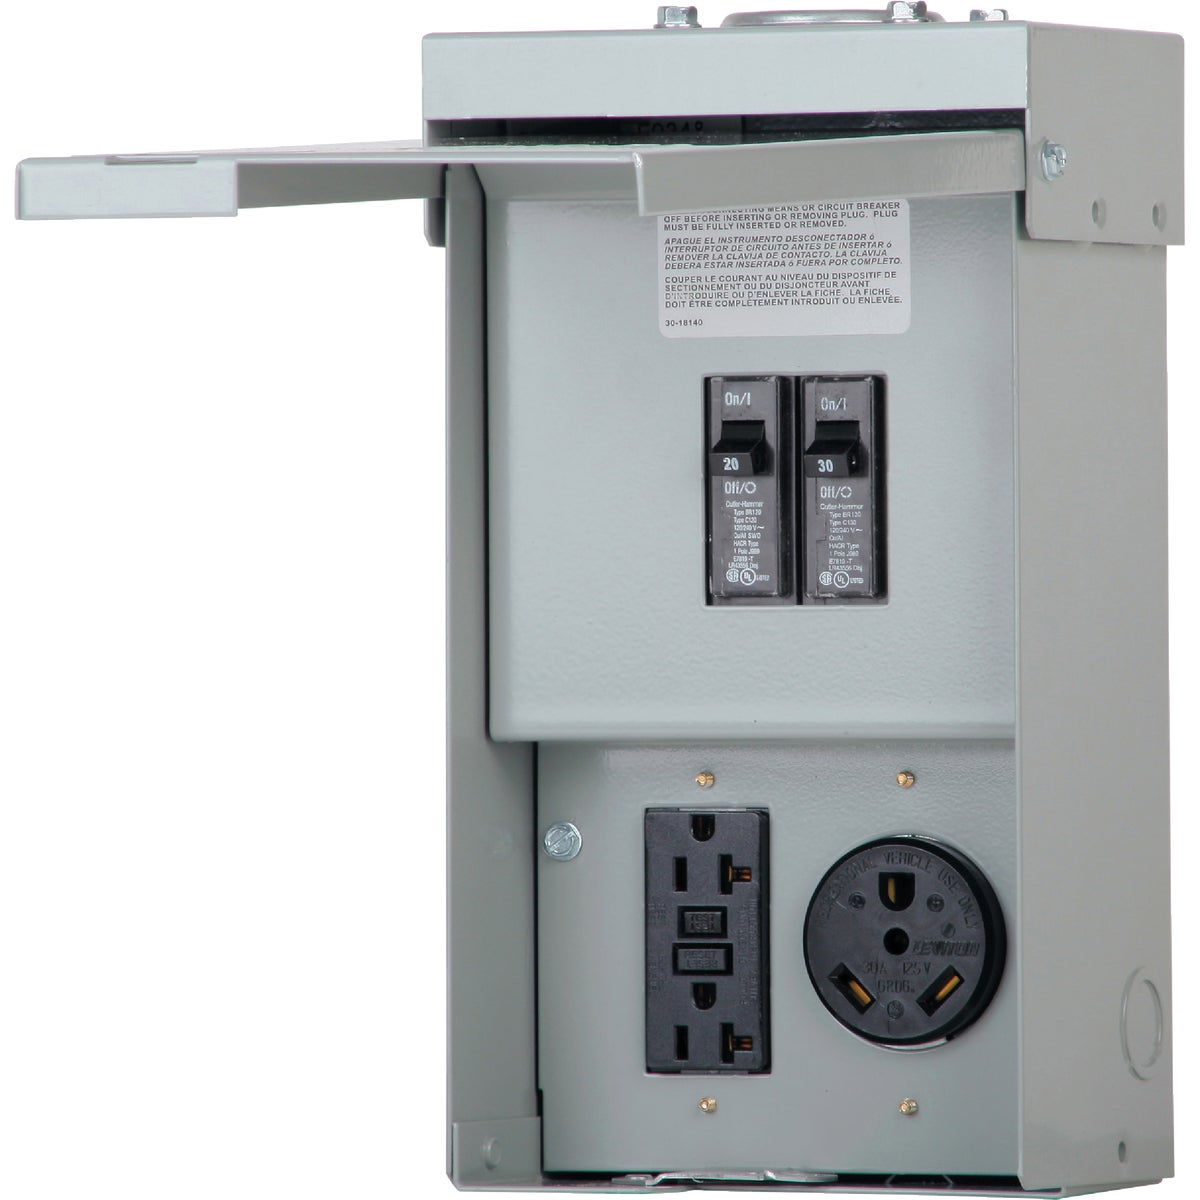 50A UTILITY POWER OUTLET - CHU4N7NS by Eaton Corporation